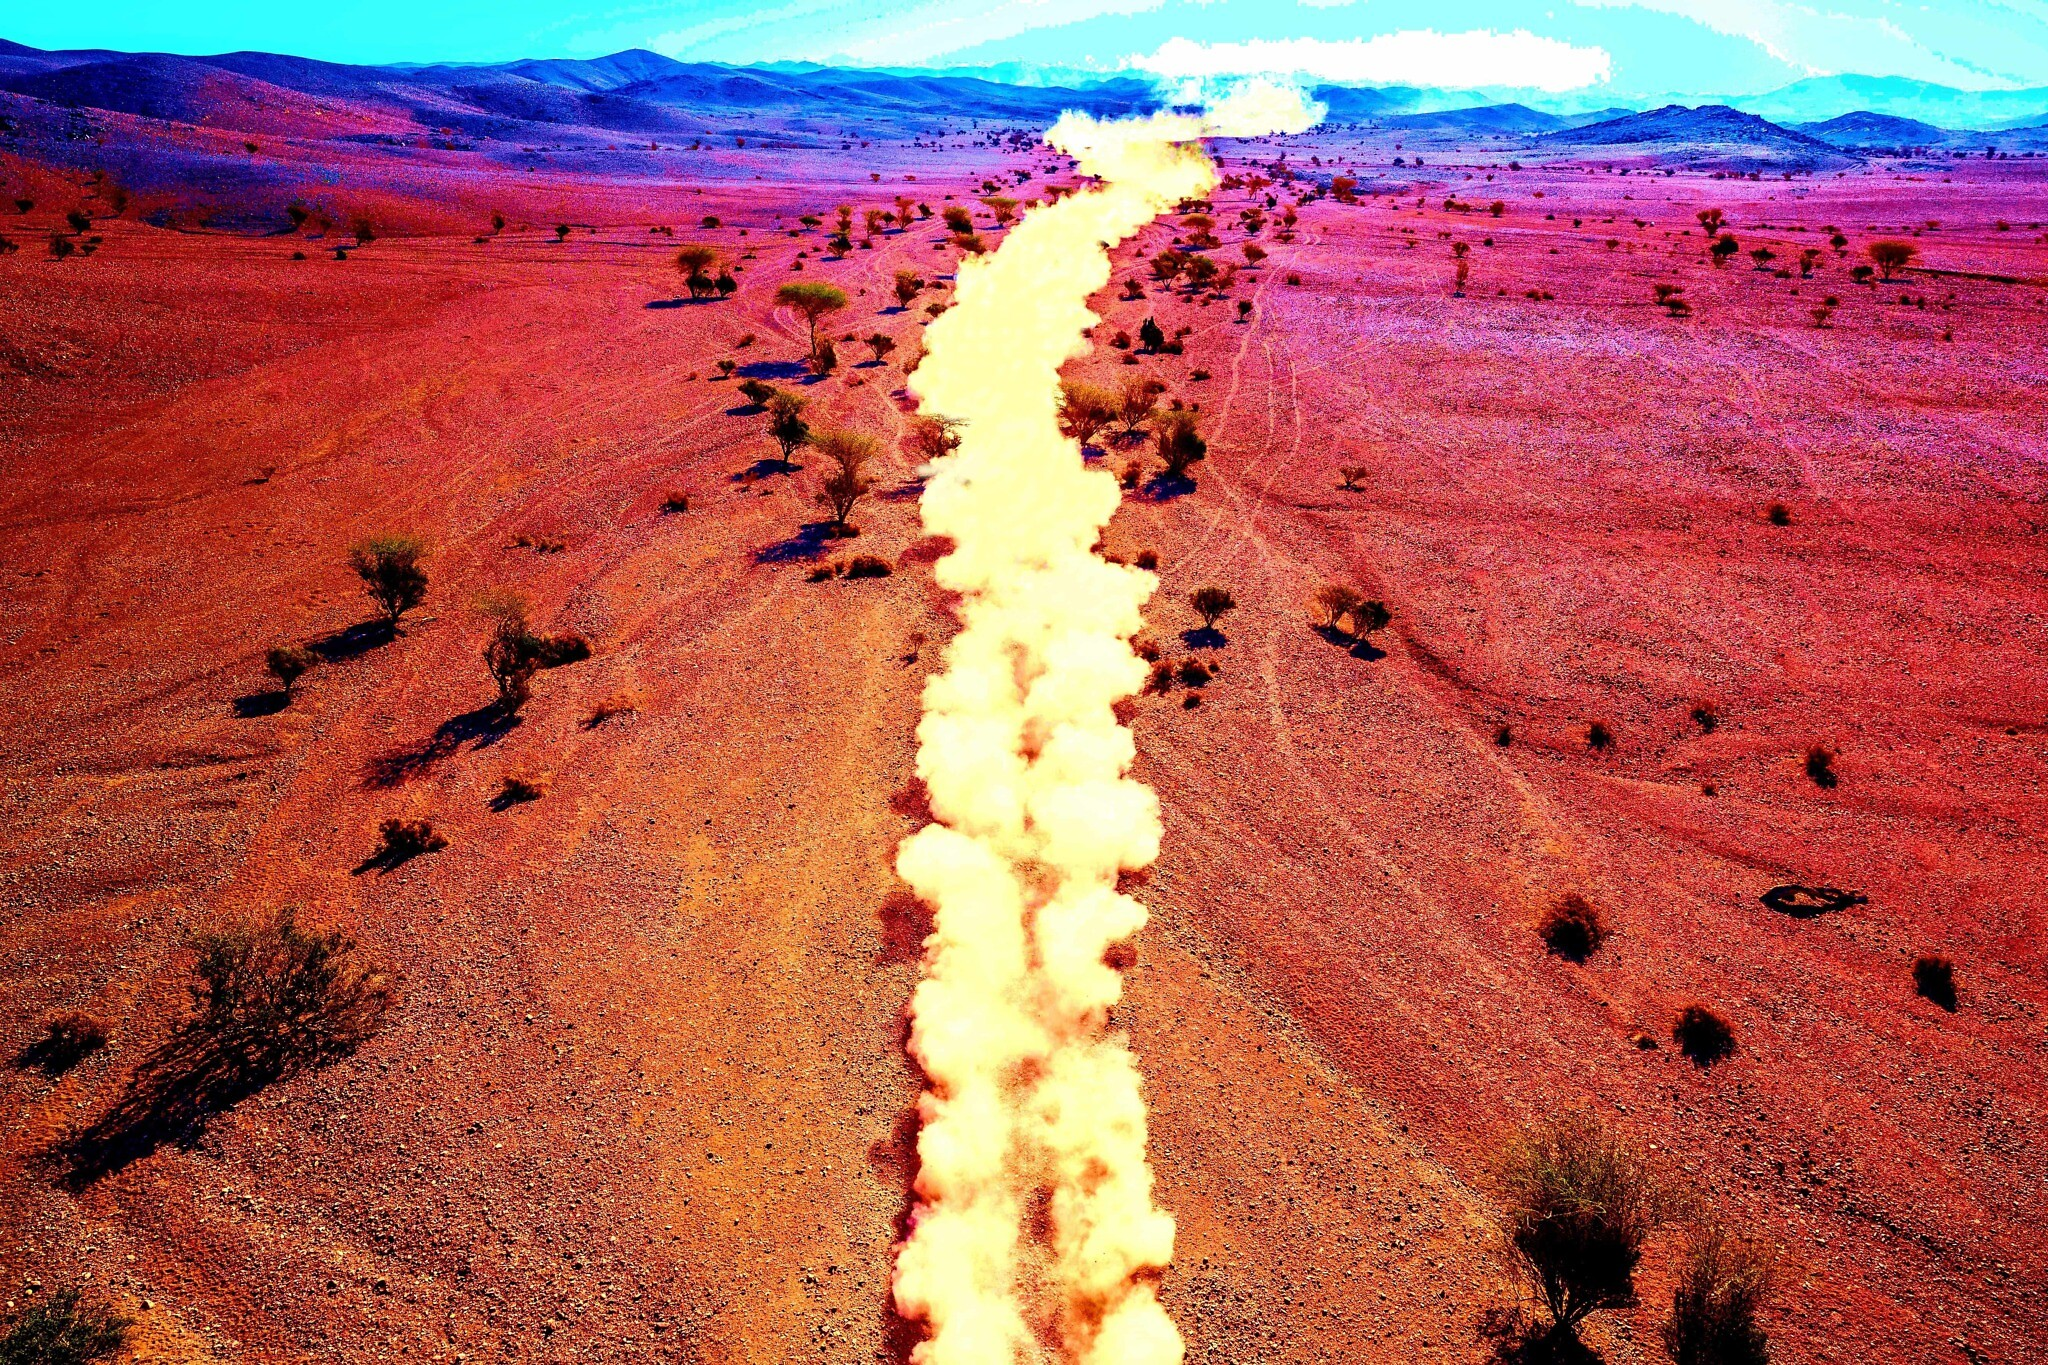 A color-adjusted photo of a race car kicking up a trail of dust during stage two of the Dakar Rally between Al Wajh and Neom, Saudi Arabia, on Monday, January 6, 2020. (Photo: AP/Bernat Armangue; Illustration: Joshua Davidovich/Times of Israel)